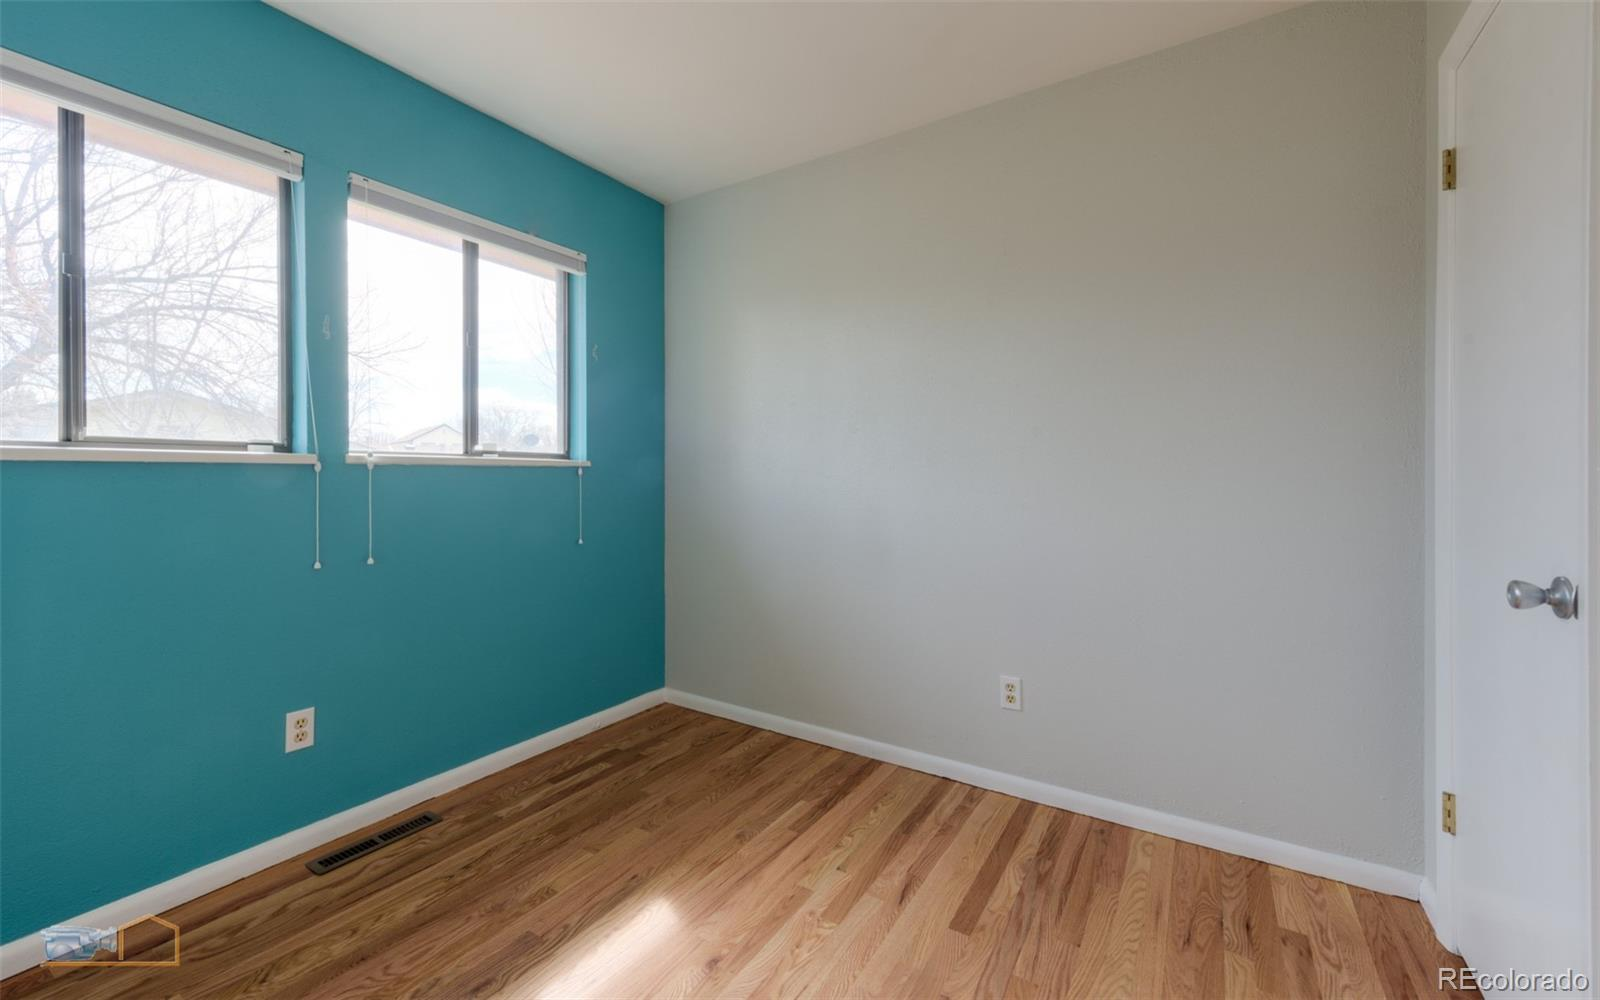 MLS# 4728758 - 13 - 6 Pinon Place, Broomfield, CO 80020